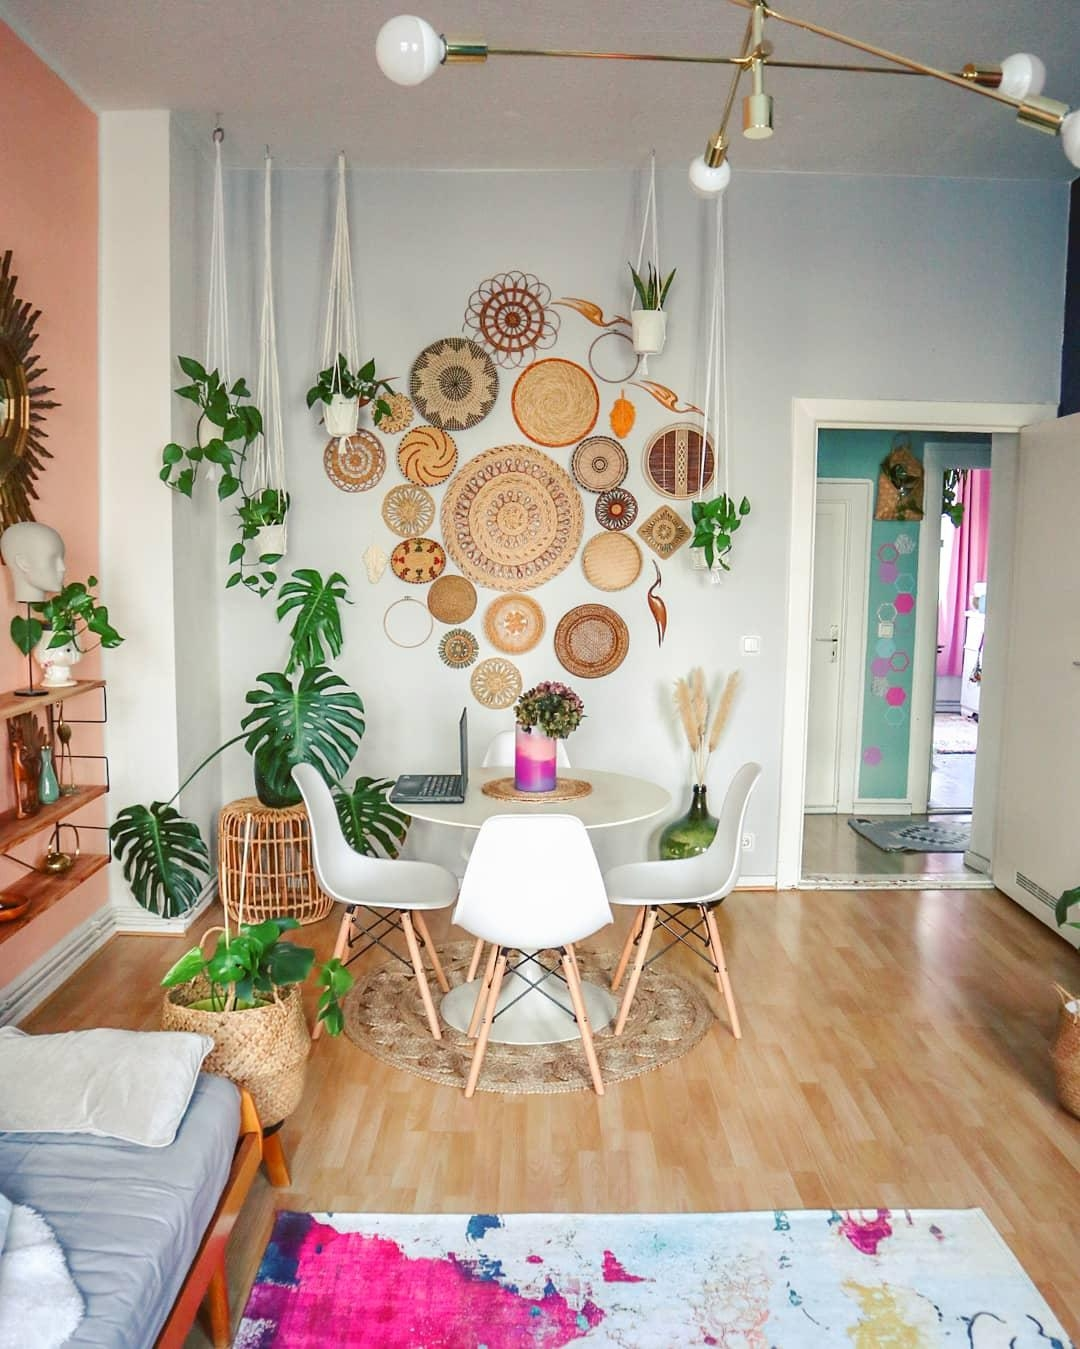 #basketwall  #bohemian #diningspace